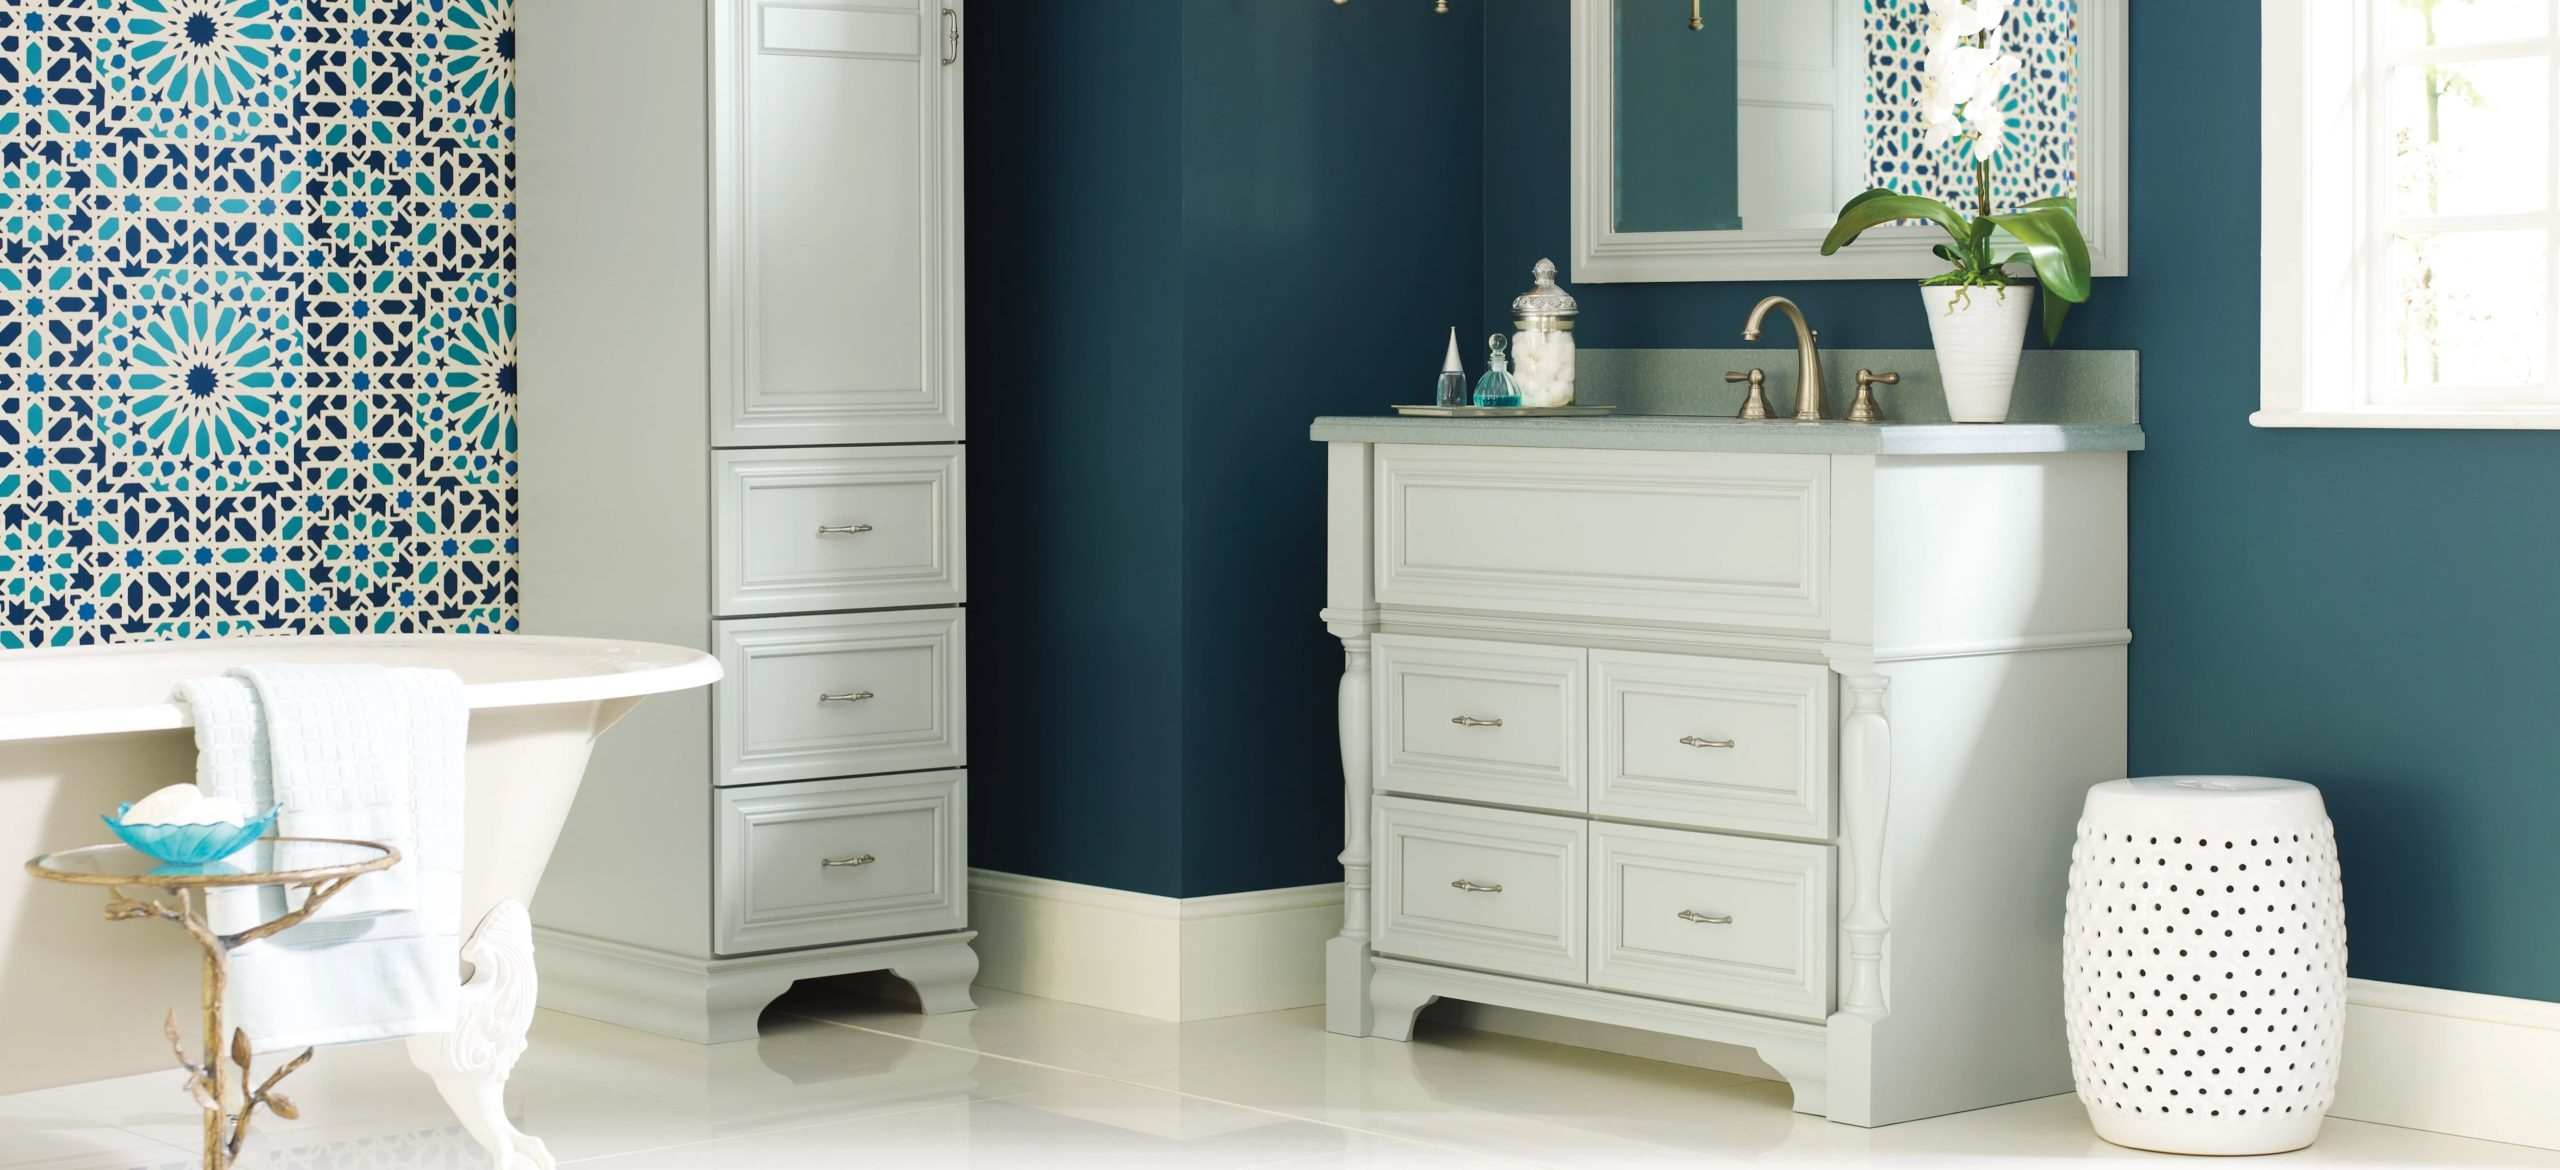 Favorite Colors for Blue Kitchen Cabinets